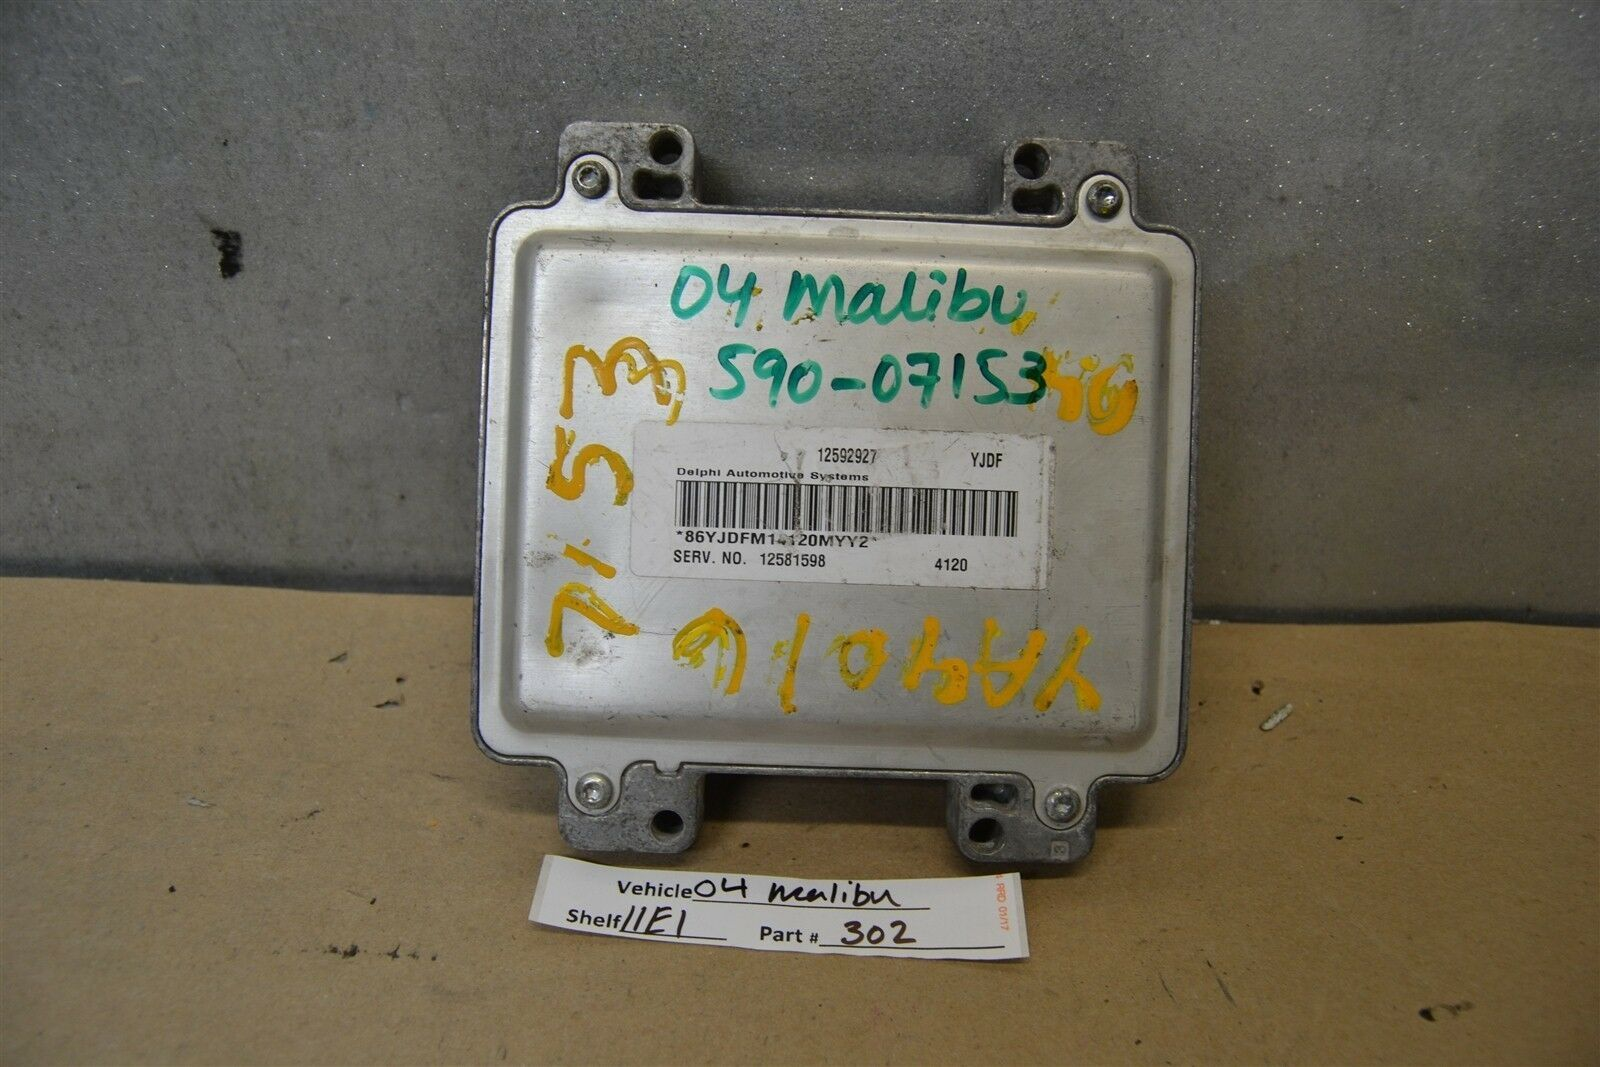 Primary image for 2004 Chevrolet Malibu 3.5L Engine Control Unit ECU 12581598 Module 02 11E1